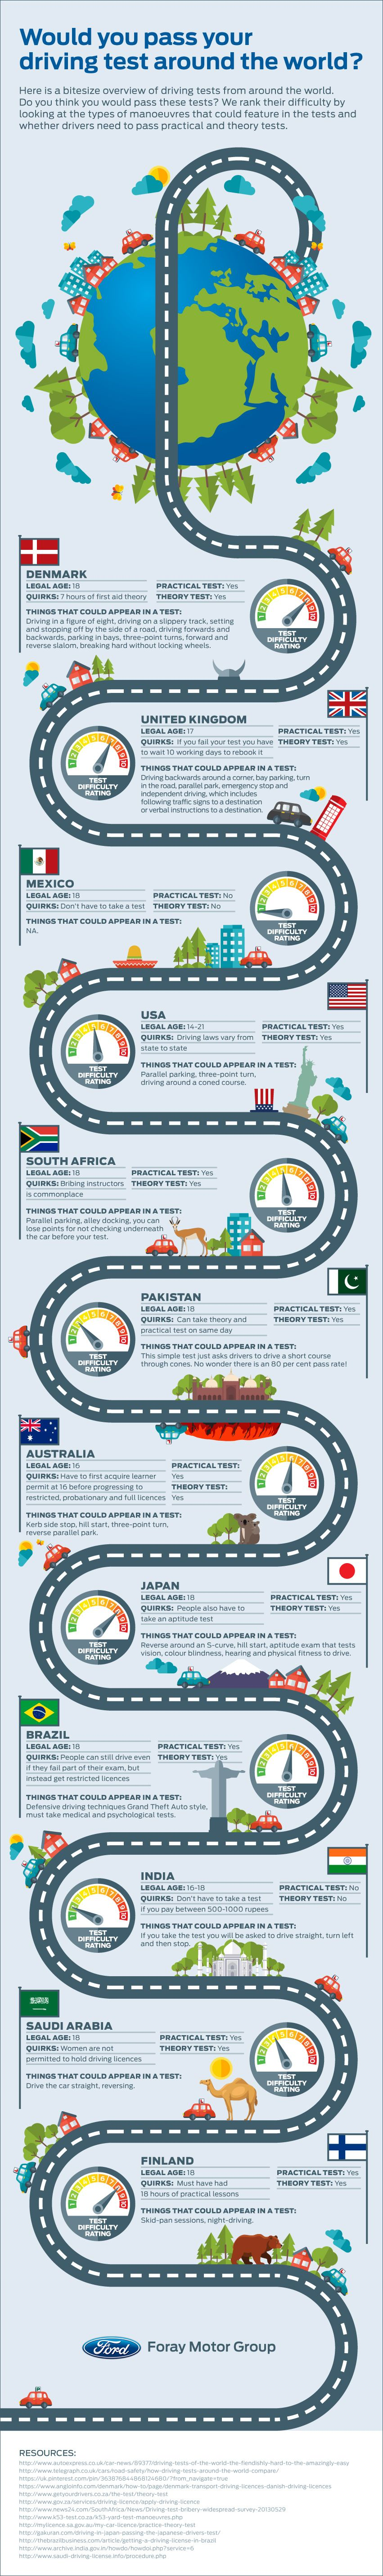 Would You Pass Your Driving Test Around The World? #Infographic